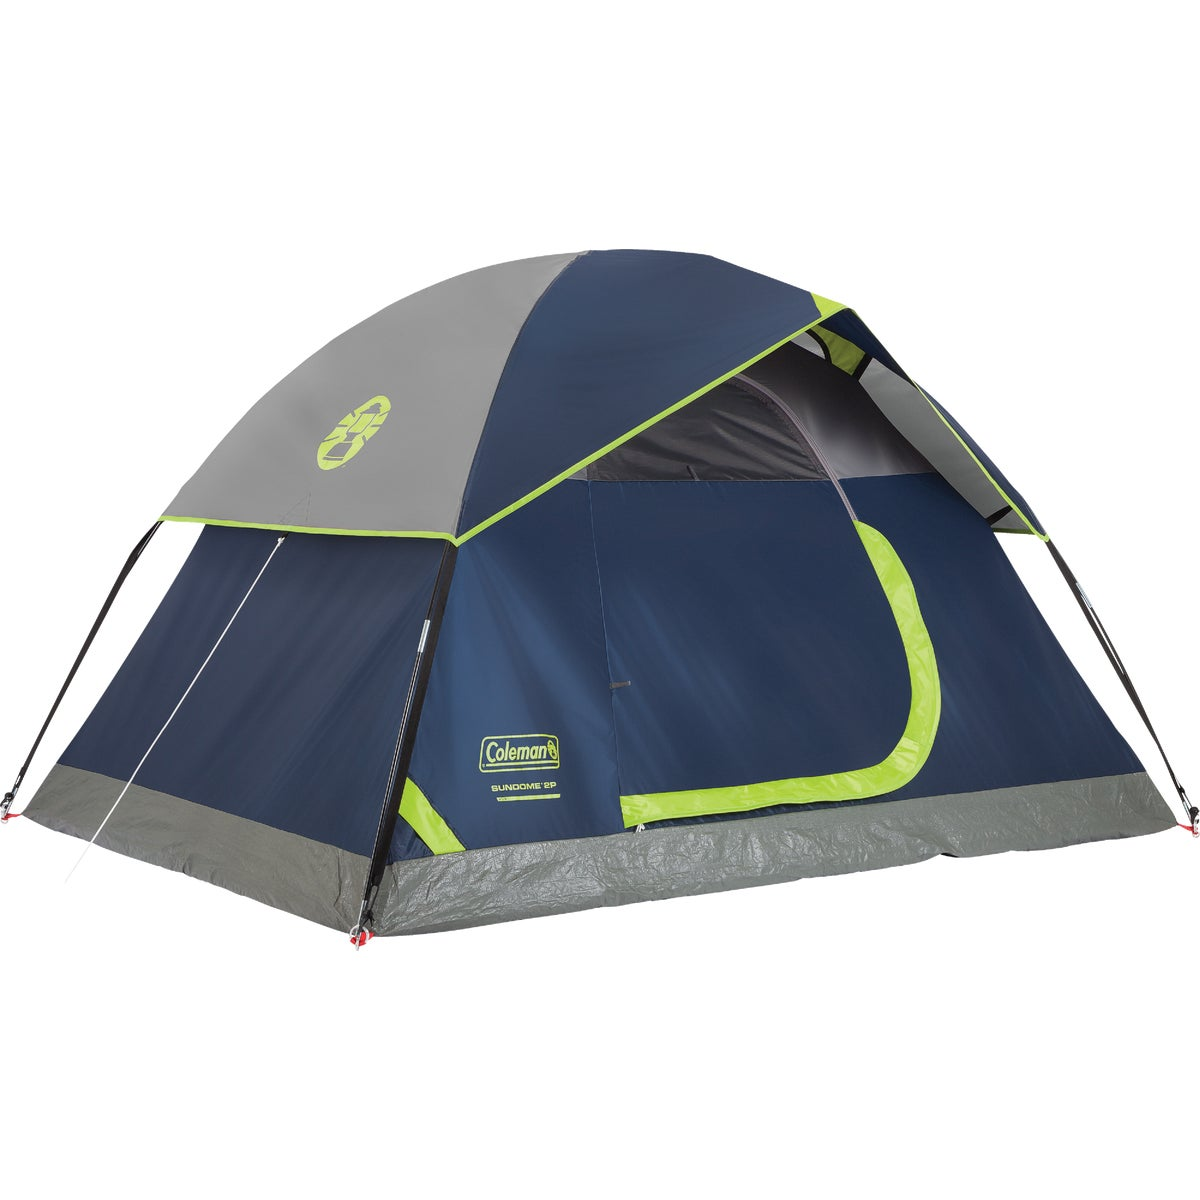 6X5 DOME TENT